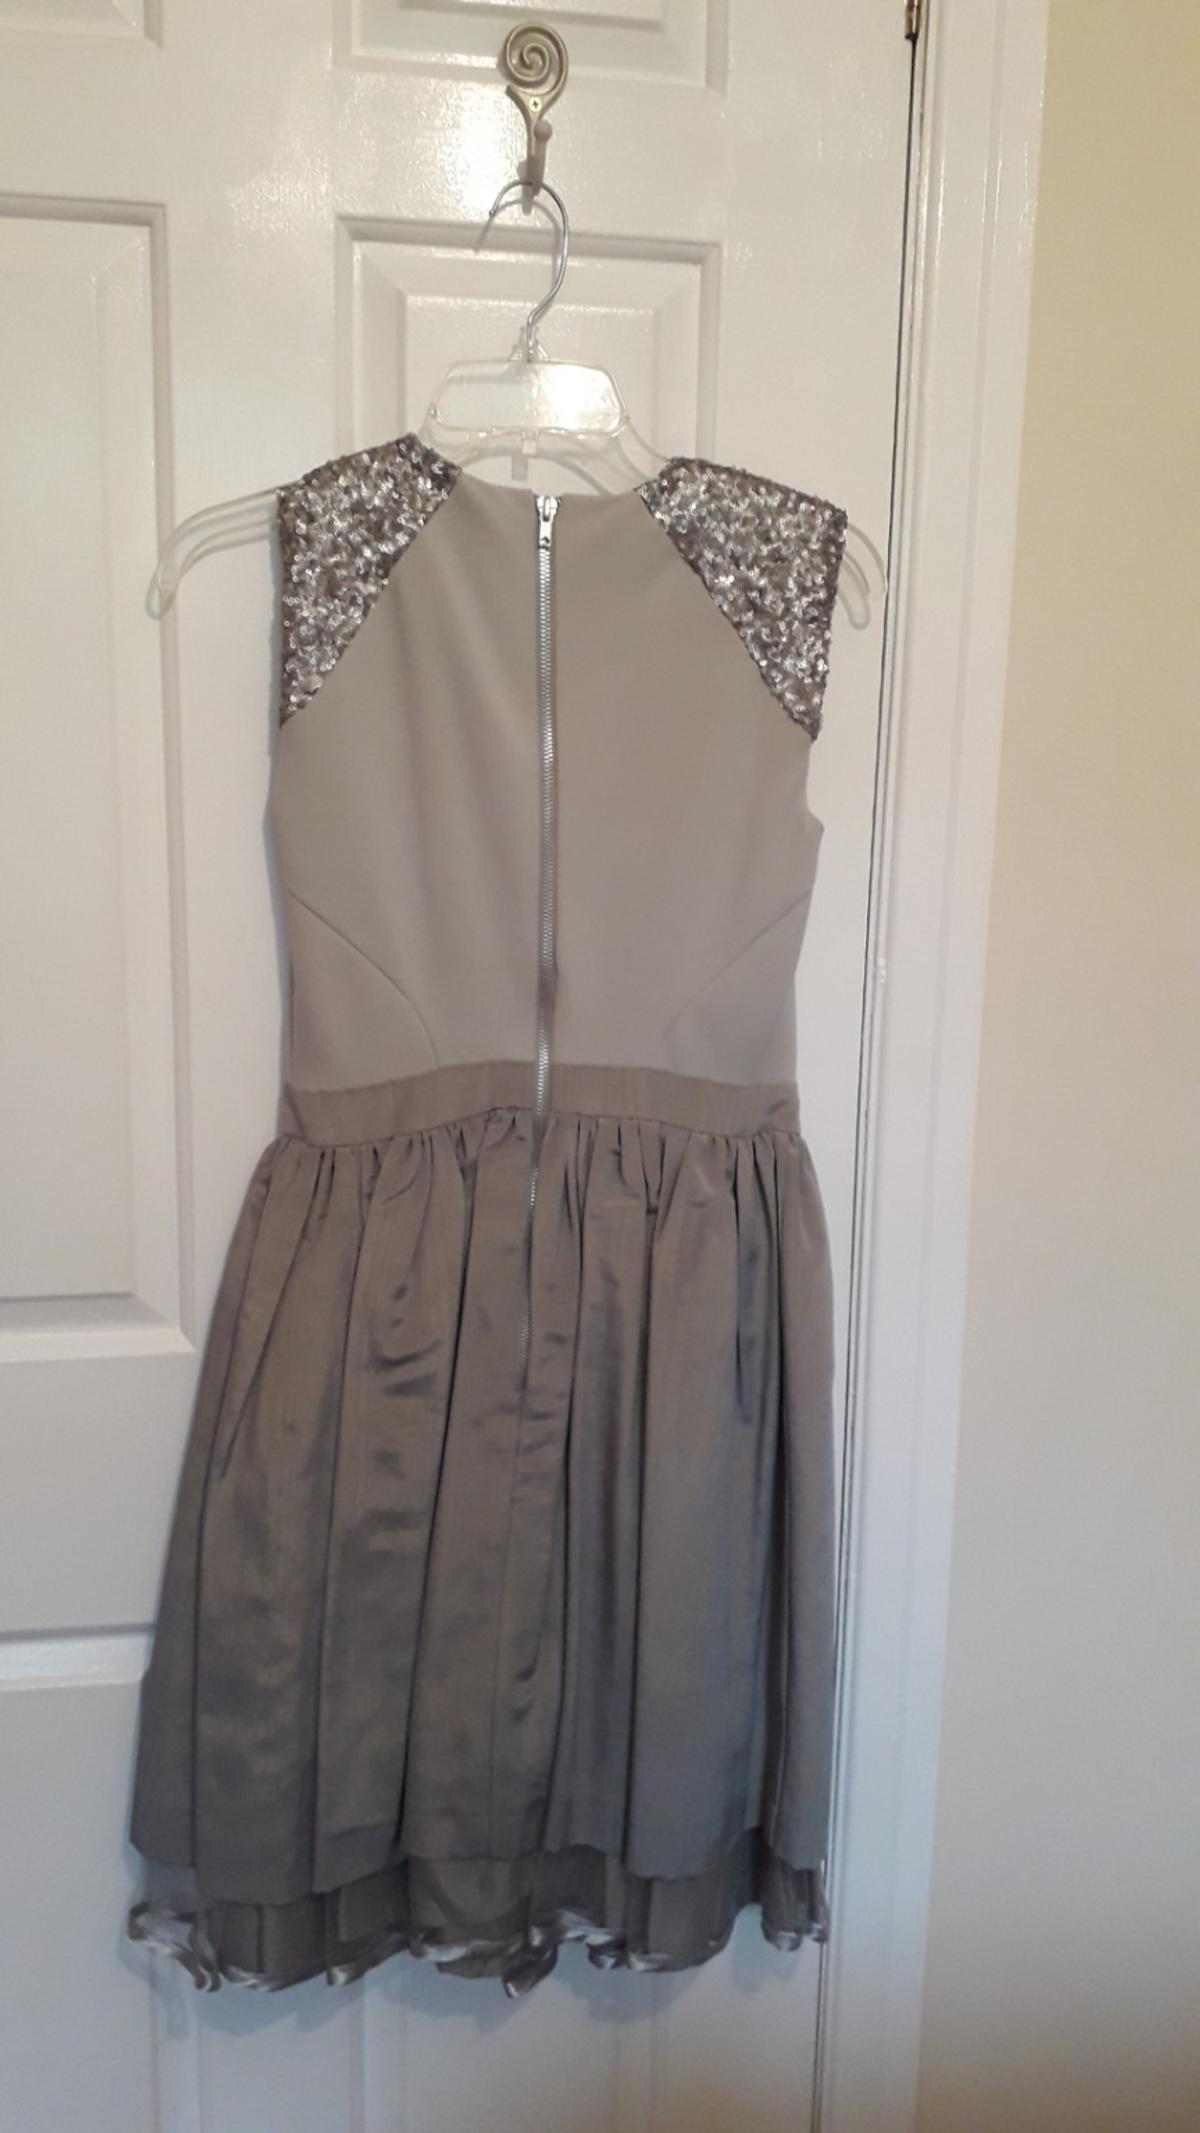 grey and silver beautiful dress brand new